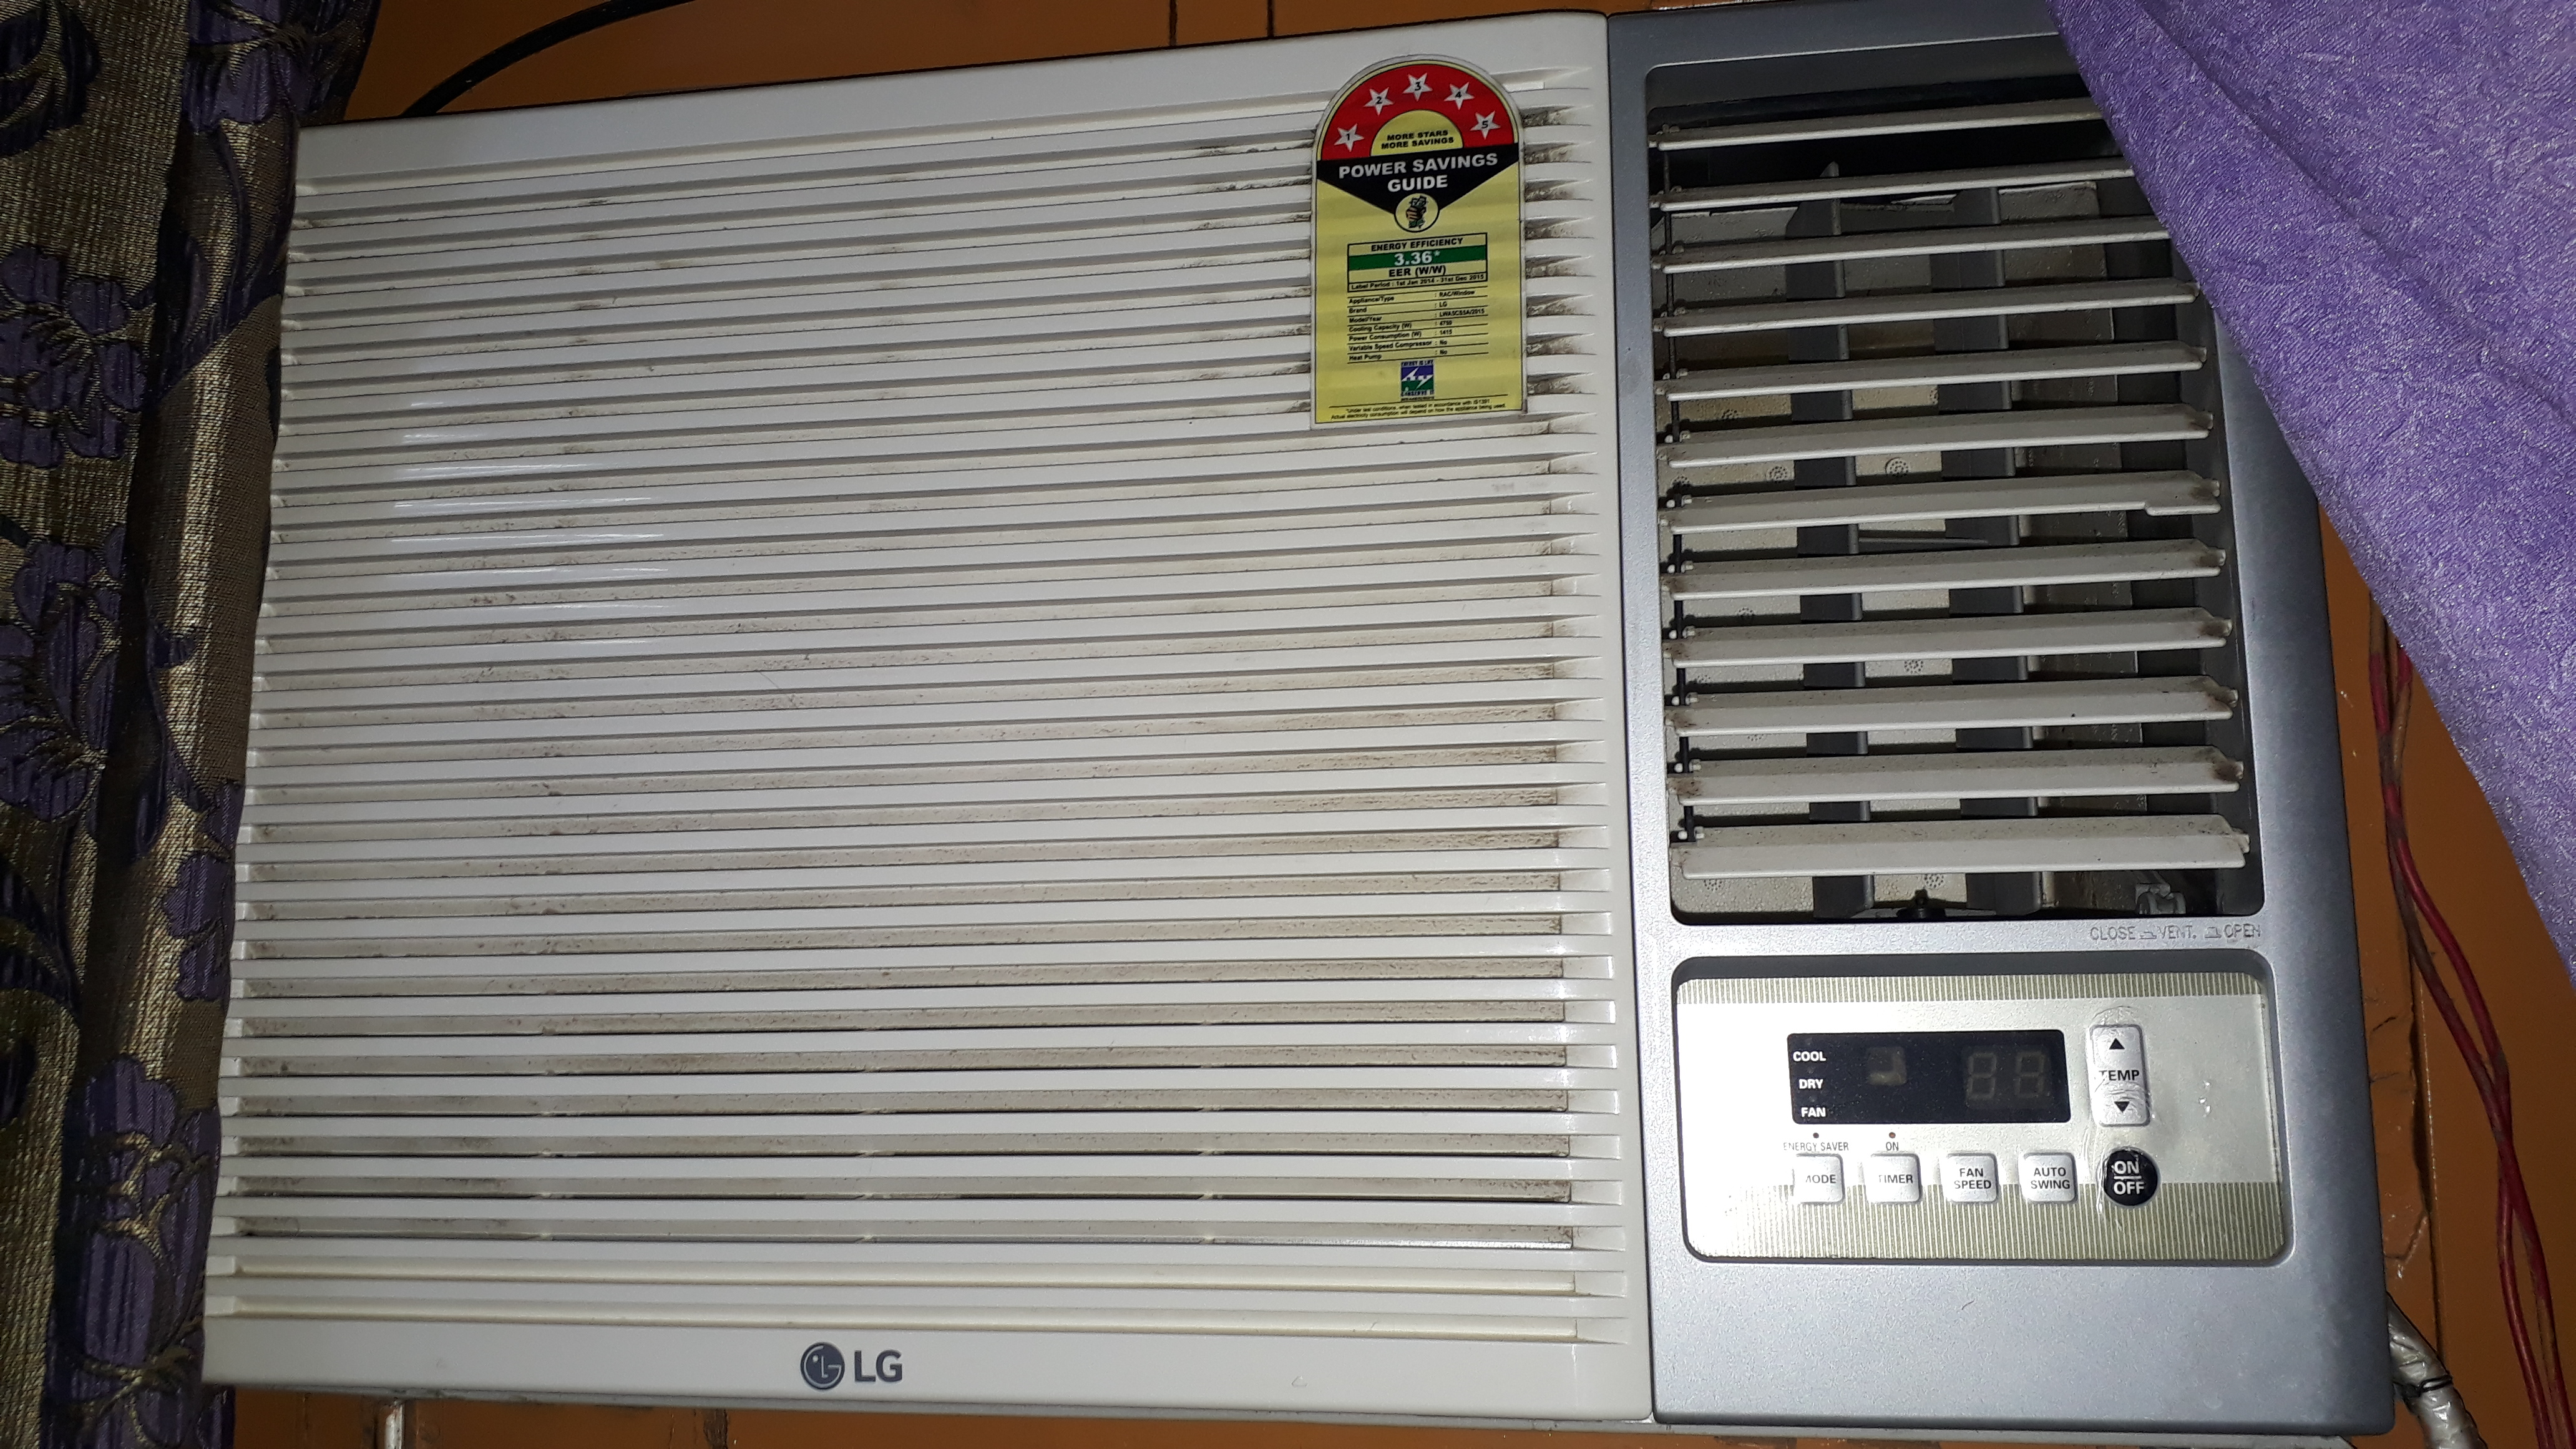 Best ac used from lg lg lwa18prdfh1 1 5 ton 5 star for 1 5 ton window ac size